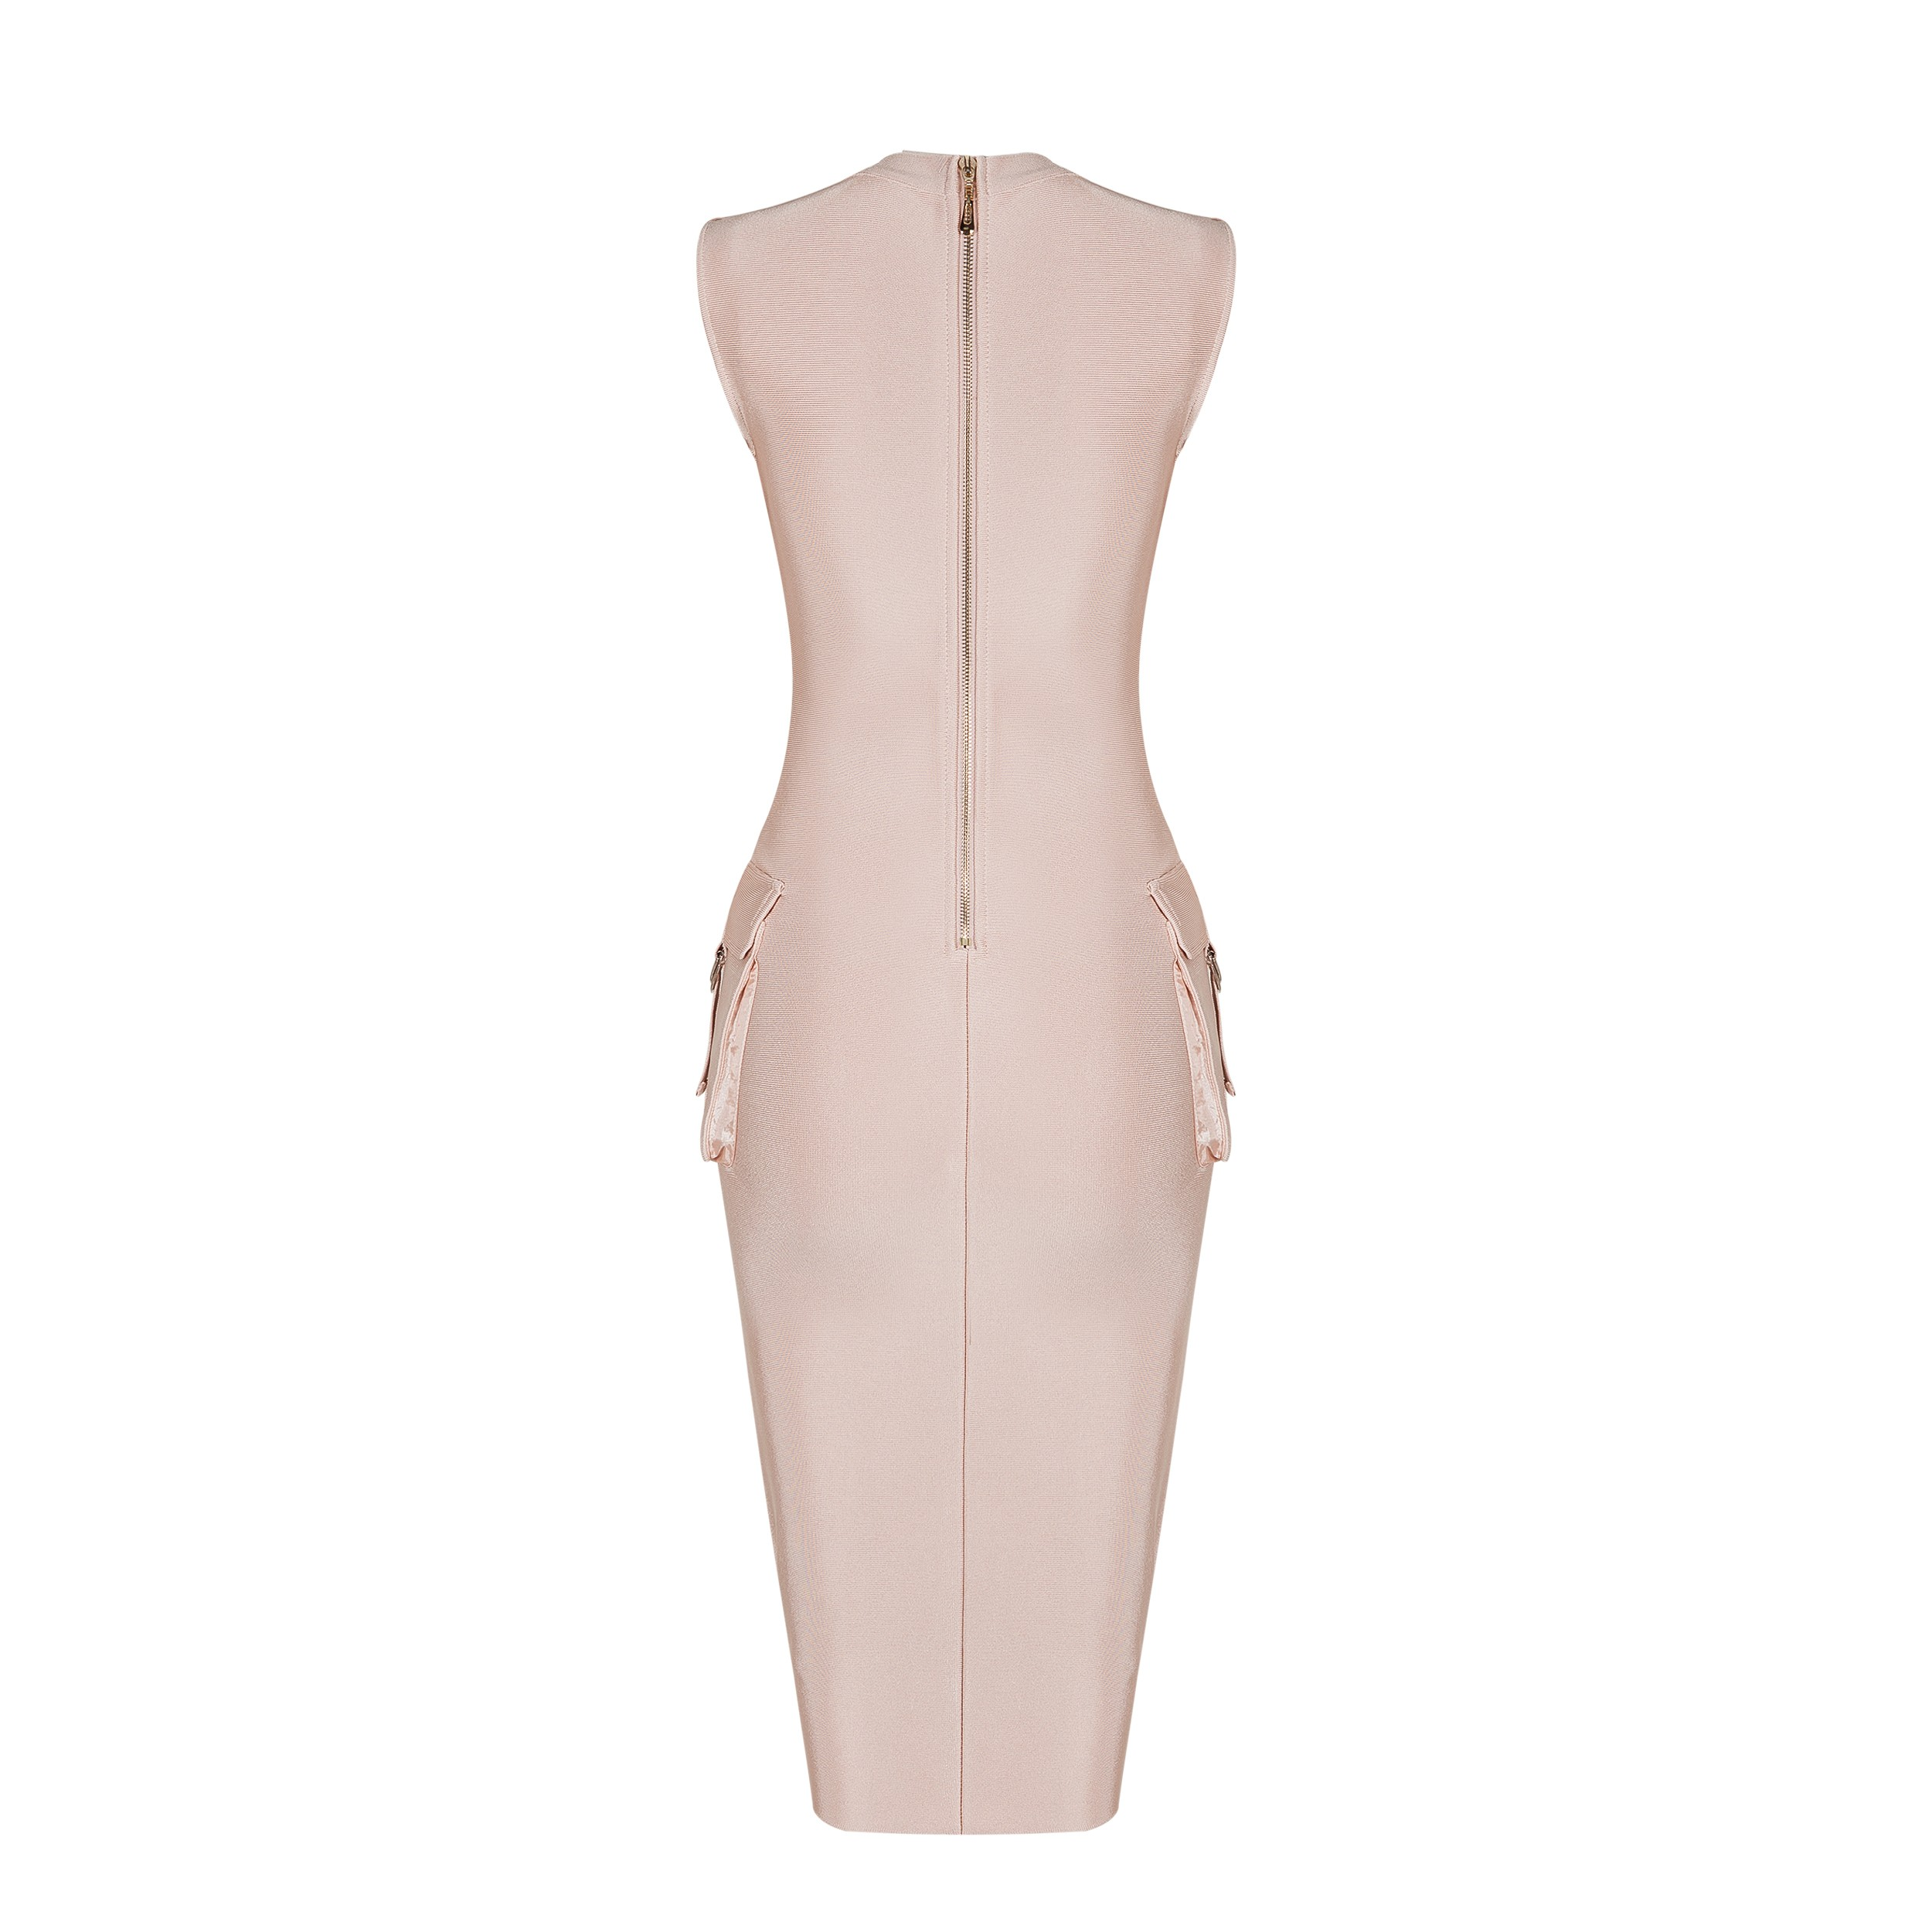 Nude V Neck Short Sleeve One Piece With Pocket Cross Evening Bandage Dress HB4309-Nude